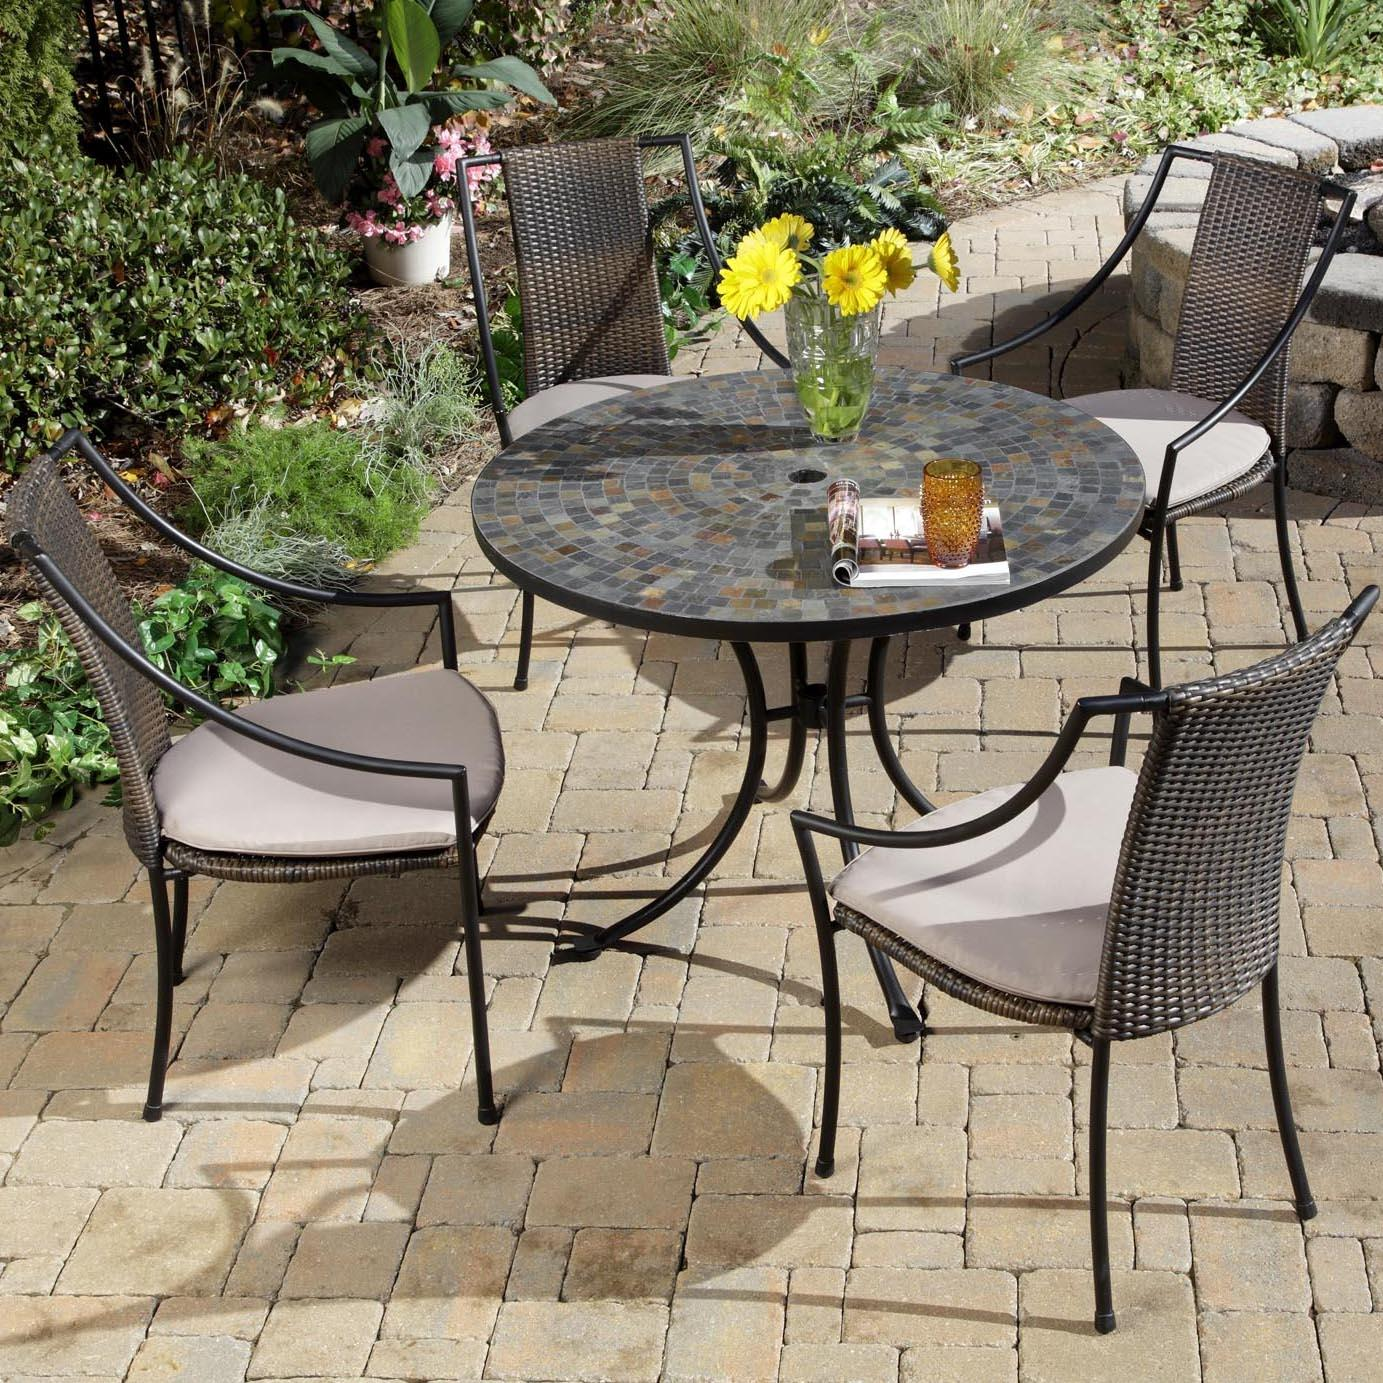 Home Styles Stone Harbor And Laguna 4-person Resin Wicker Patio Dining Set With Mosaic Table Top - Black at Sears.com